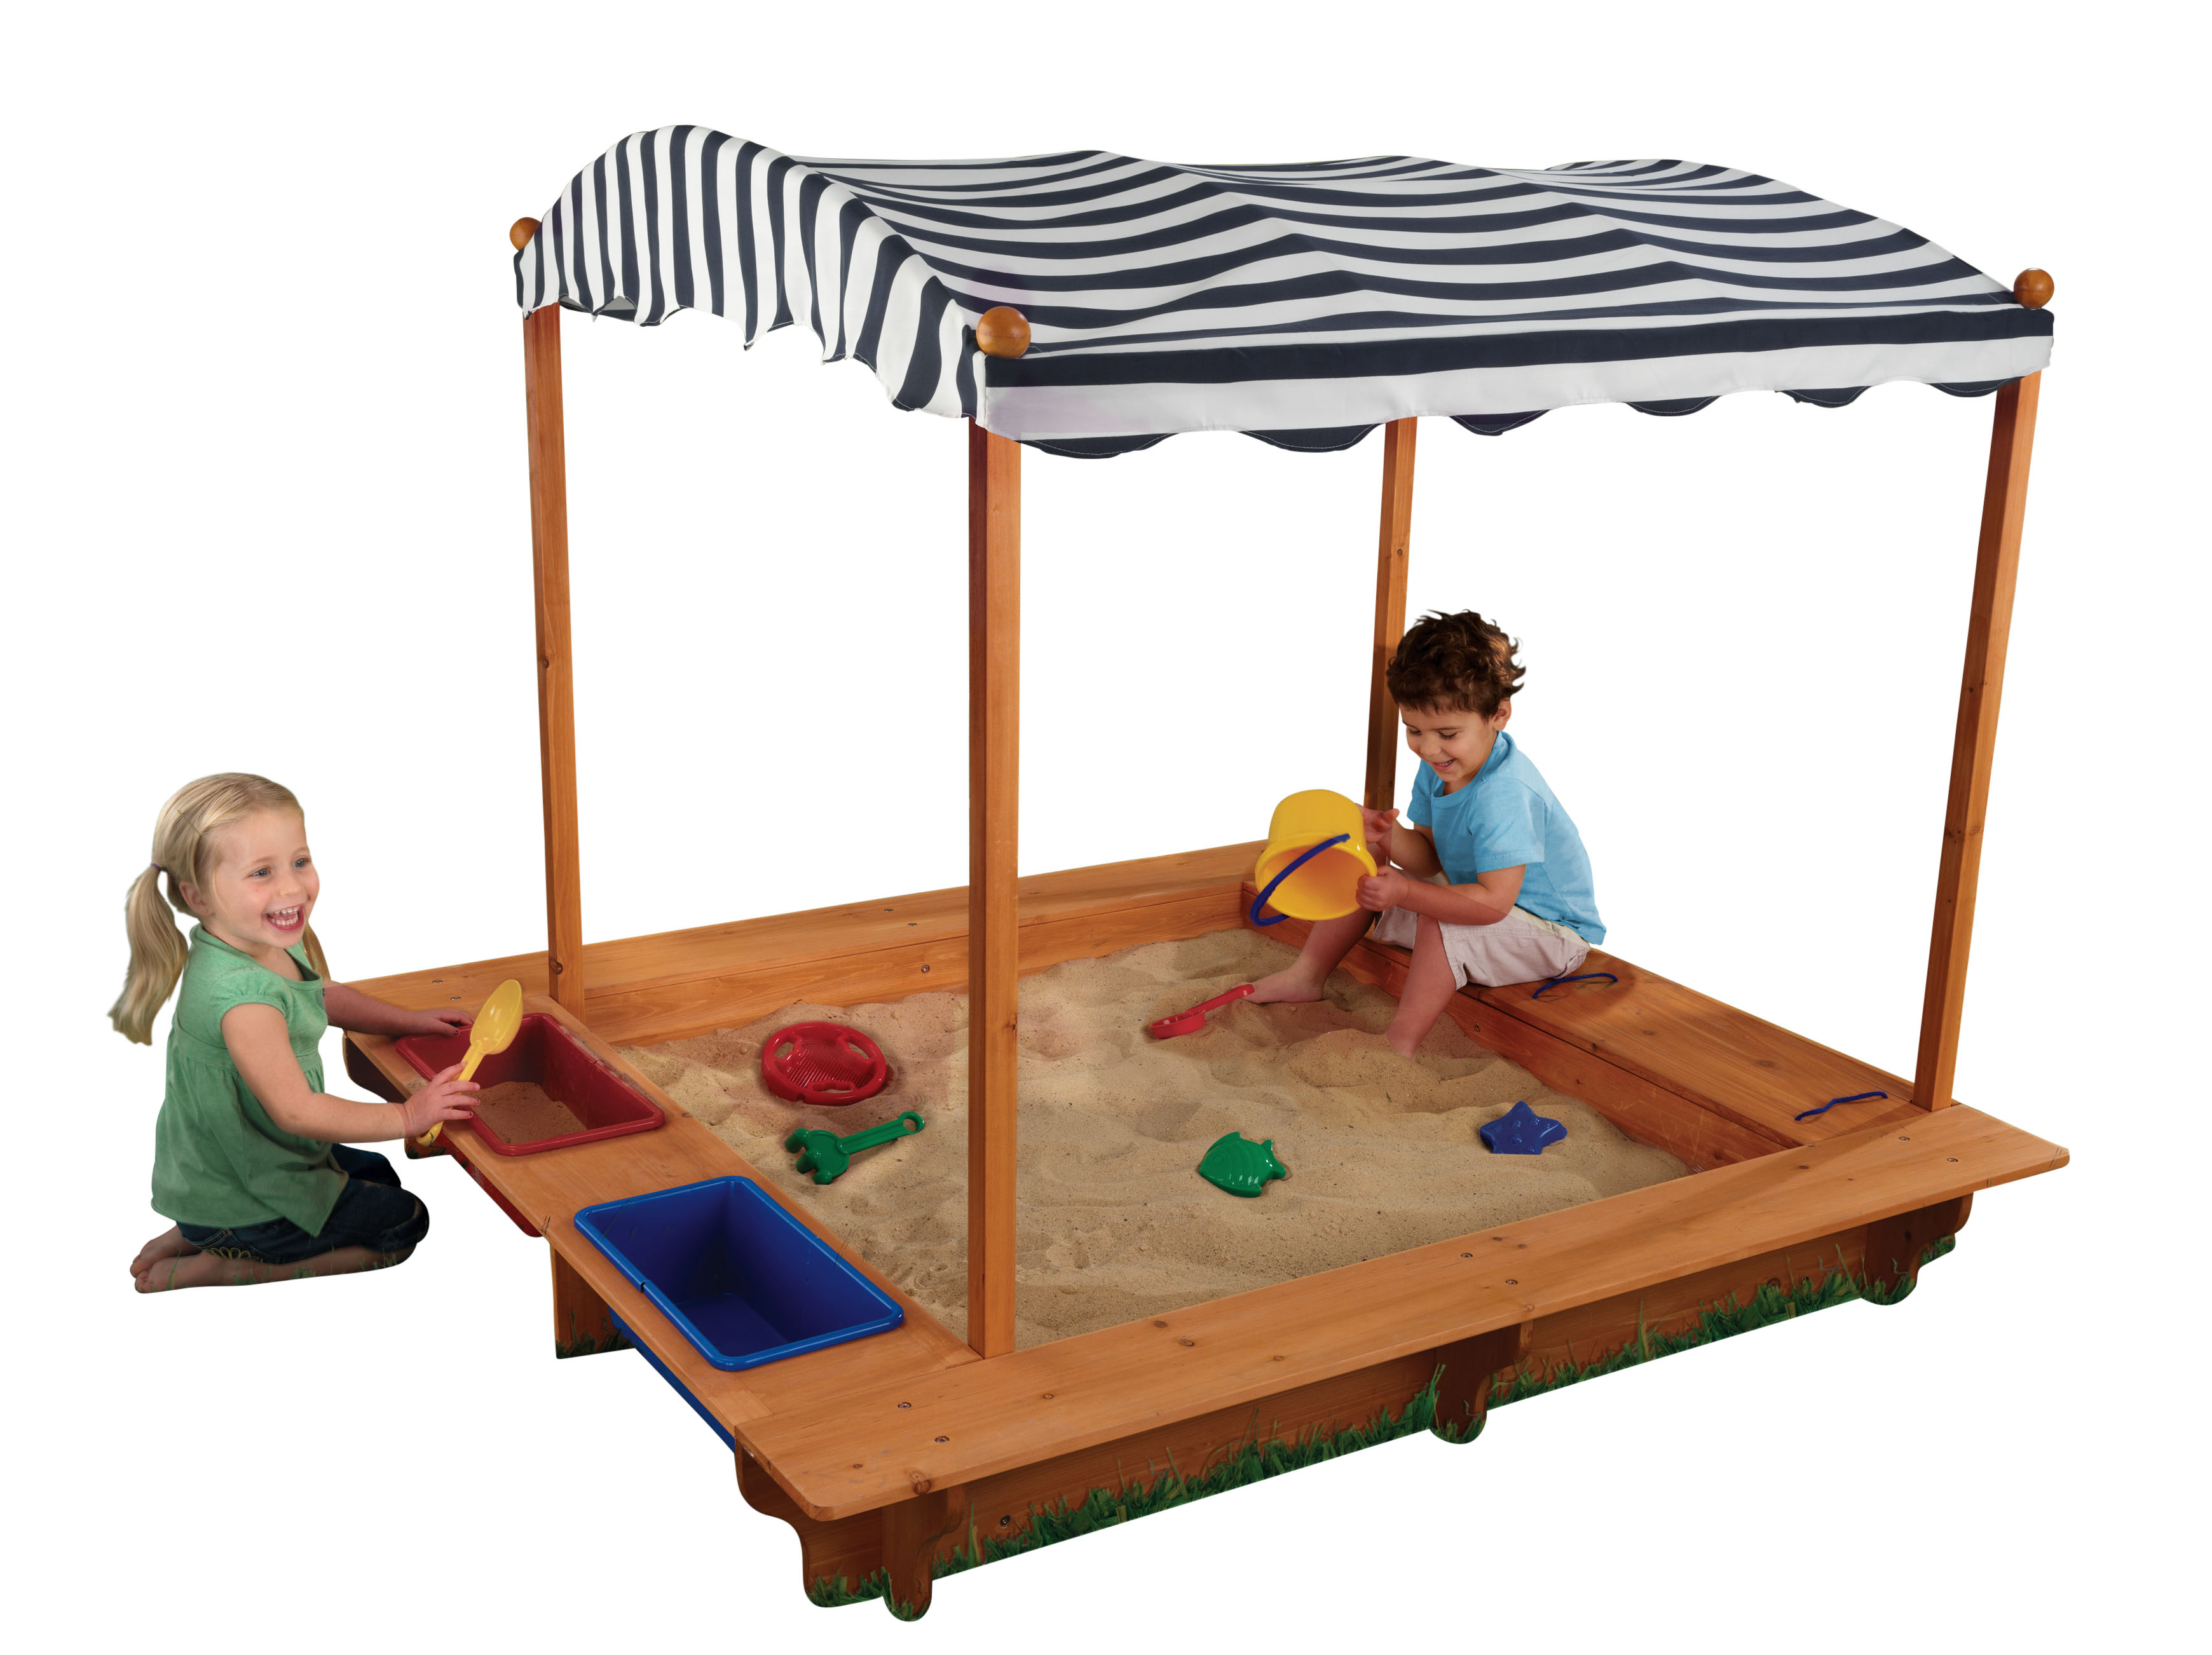 KidKraft Outdoor Sandbox with Canopy - Navy u0026 White  sc 1 st  Walmart & KidKraft Outdoor Sandbox with Canopy - Navy u0026 White - Walmart.com